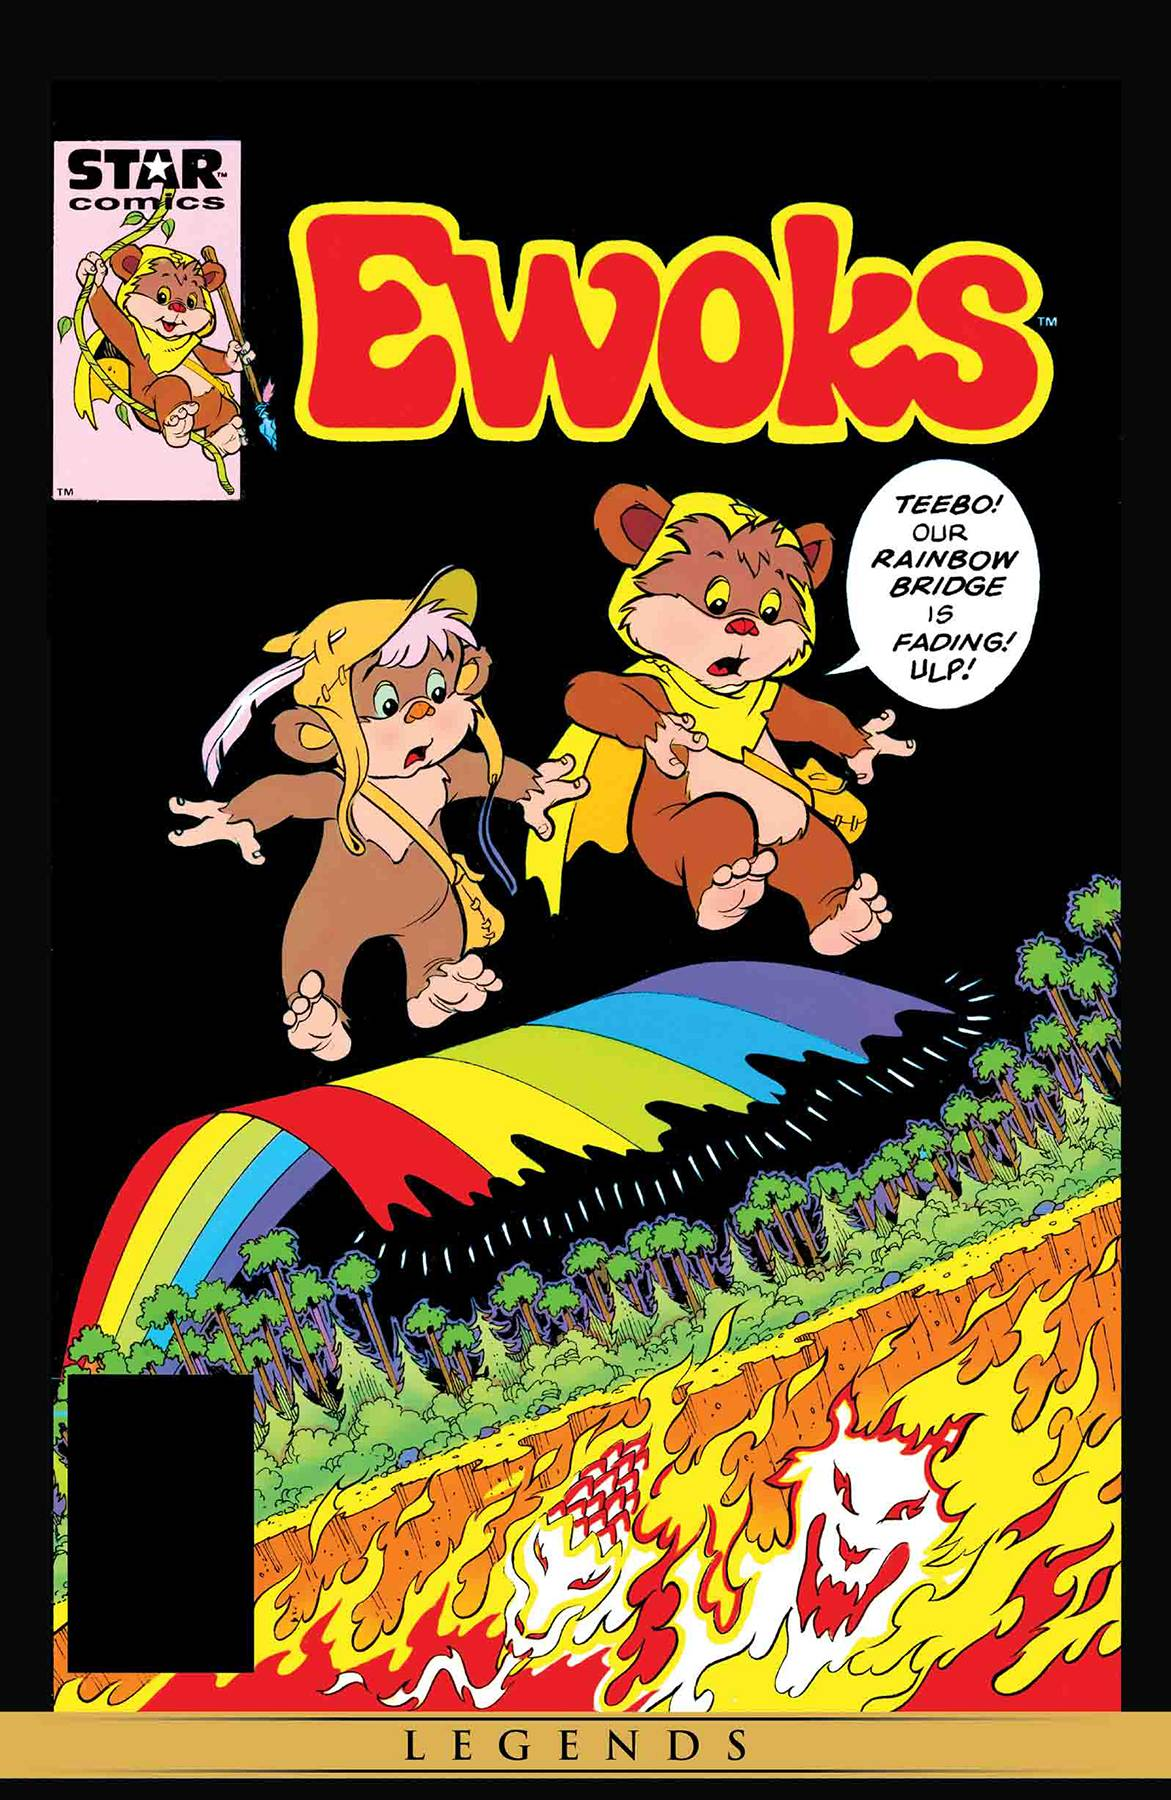 TRUE BELIEVERS STAR WARS EWOKS 1.jpg